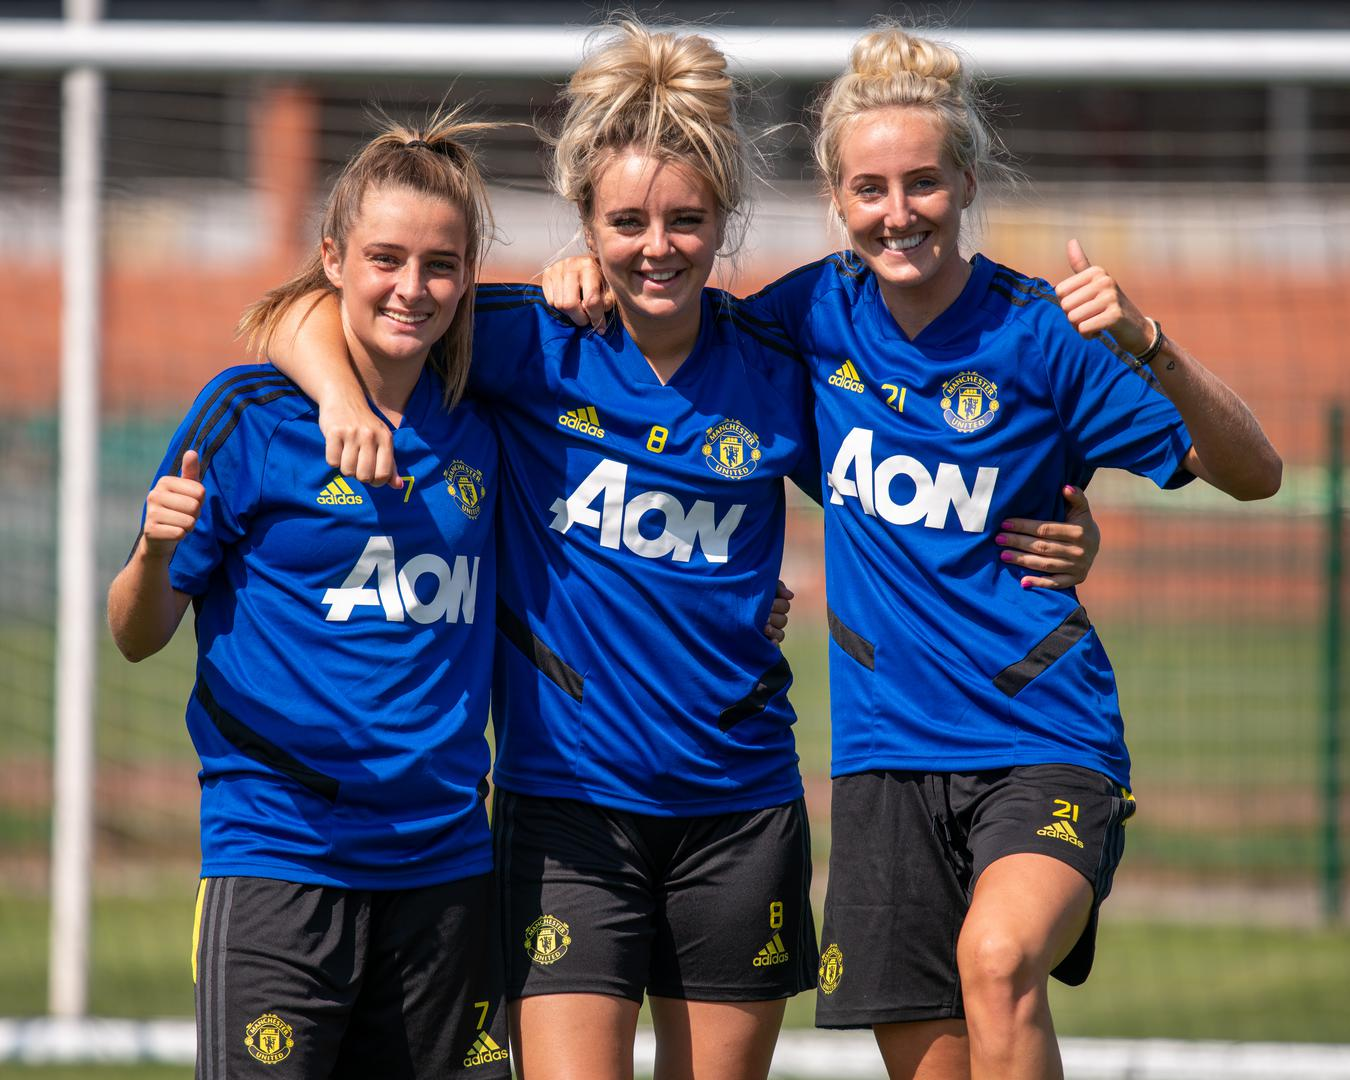 Manchester United Women pose for a photo at the first pre-season training session.